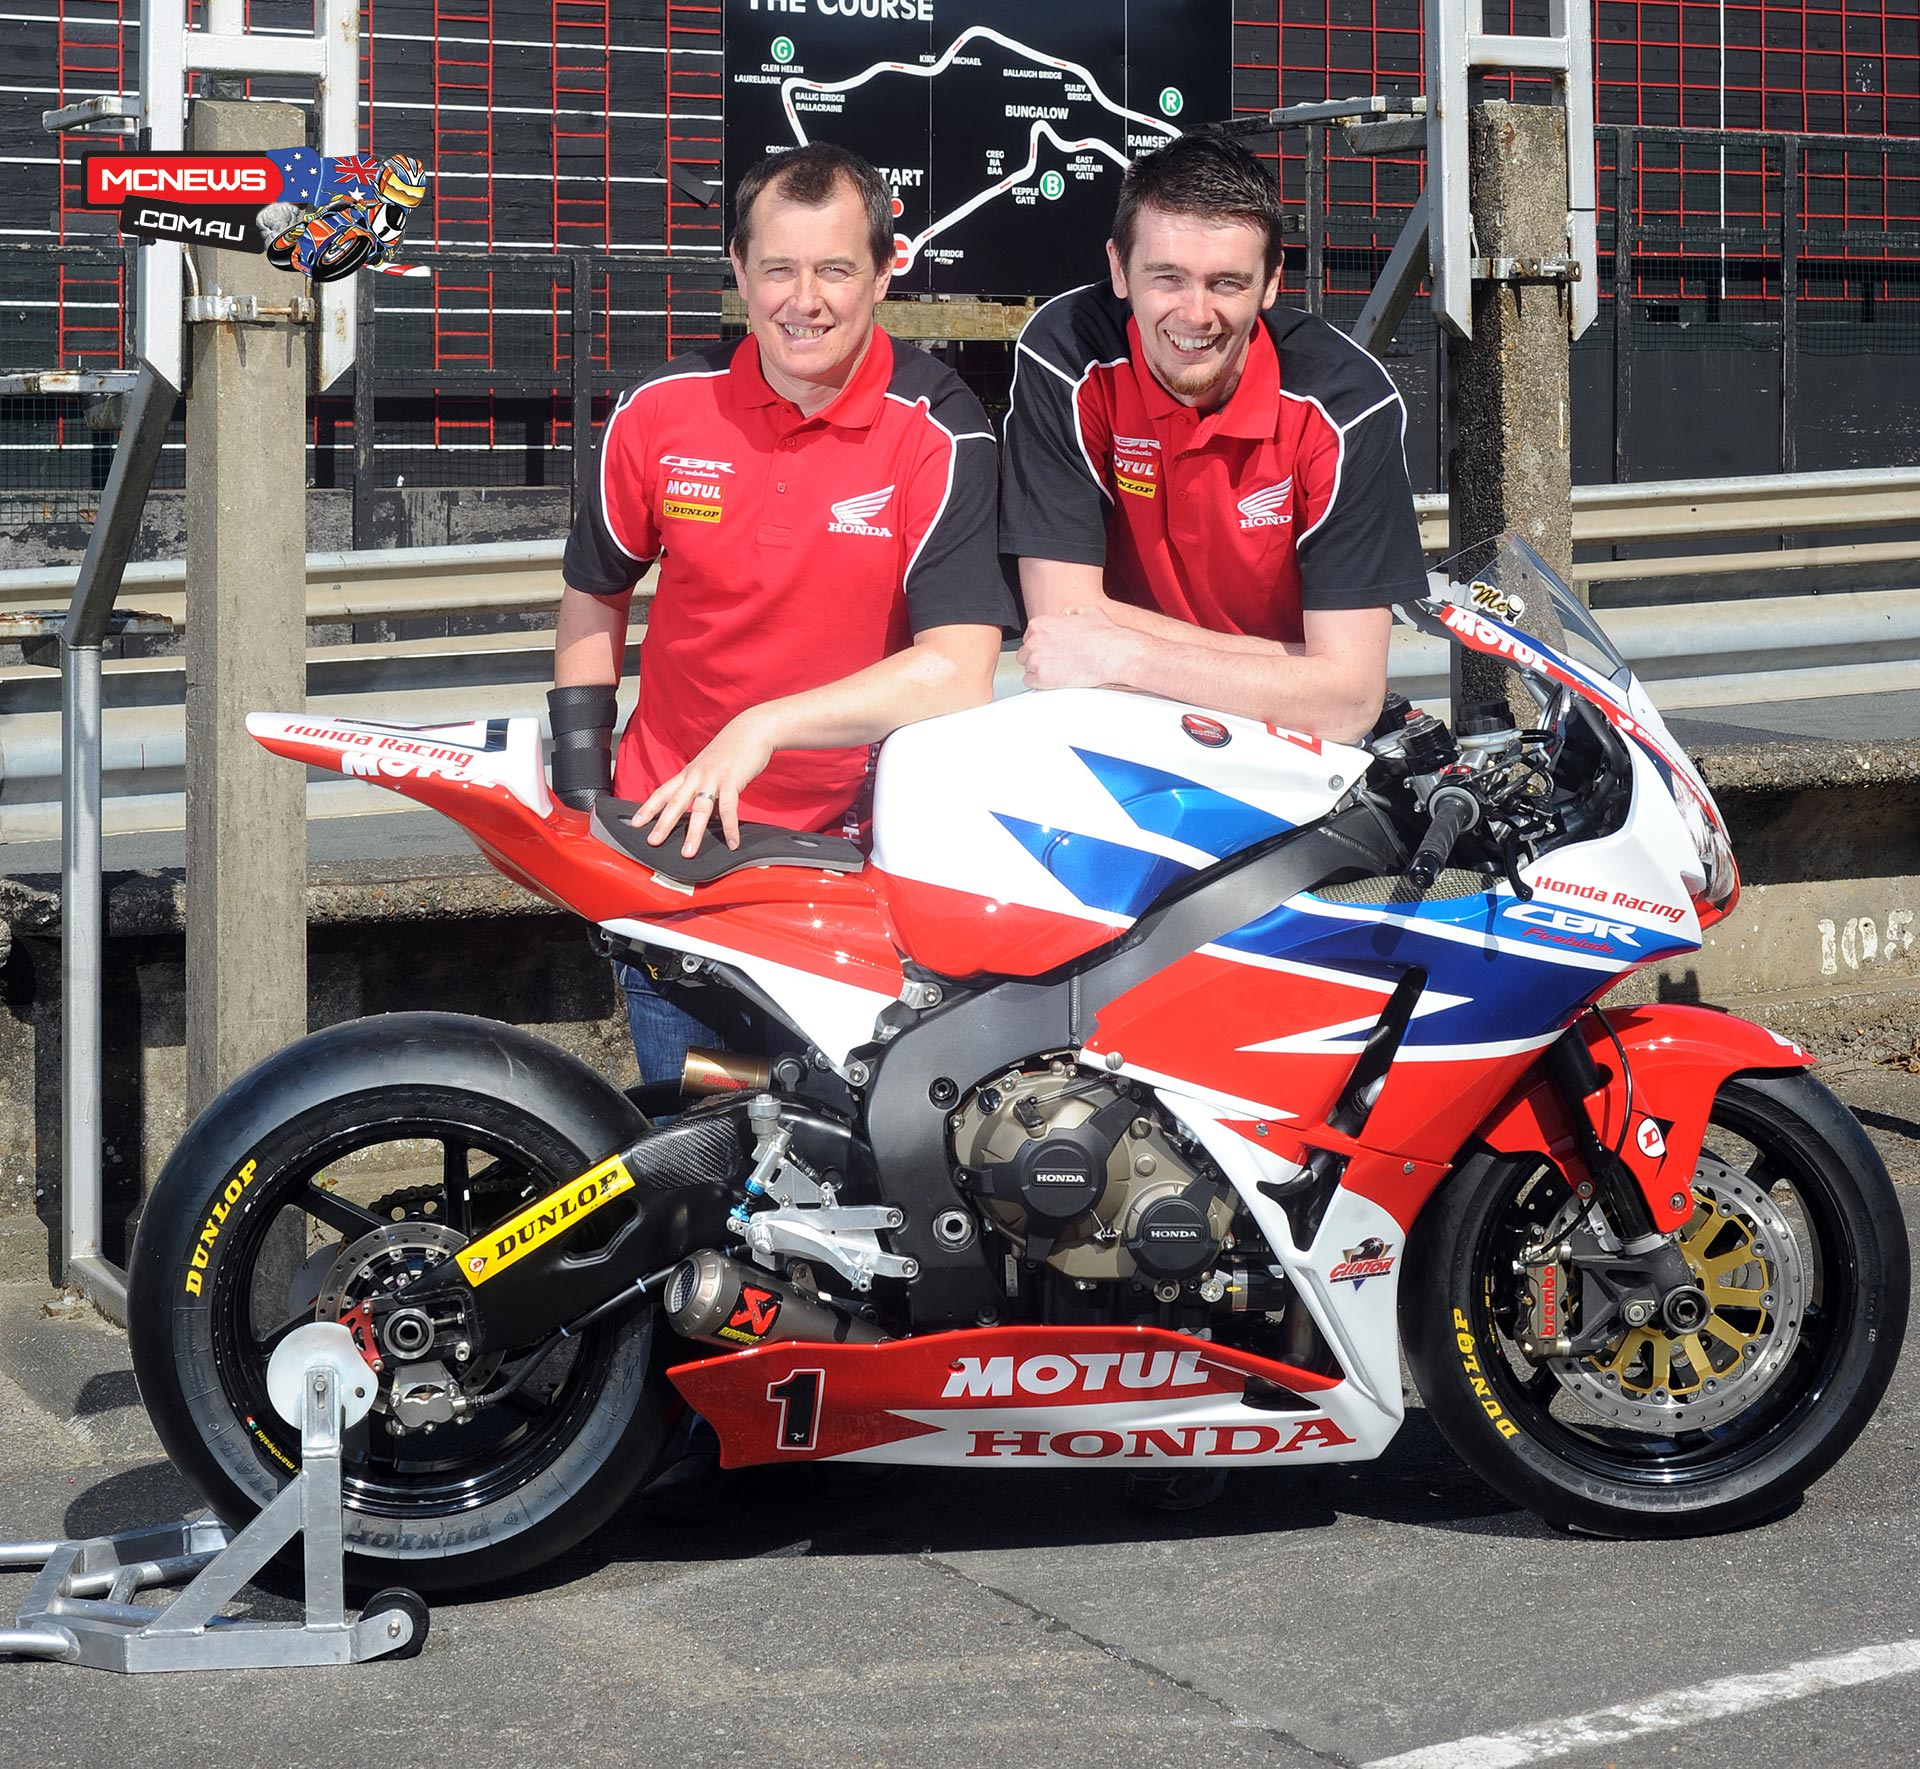 John McGuinness and Conor Cummins remain with Honda Racing for 2015 roads campaign